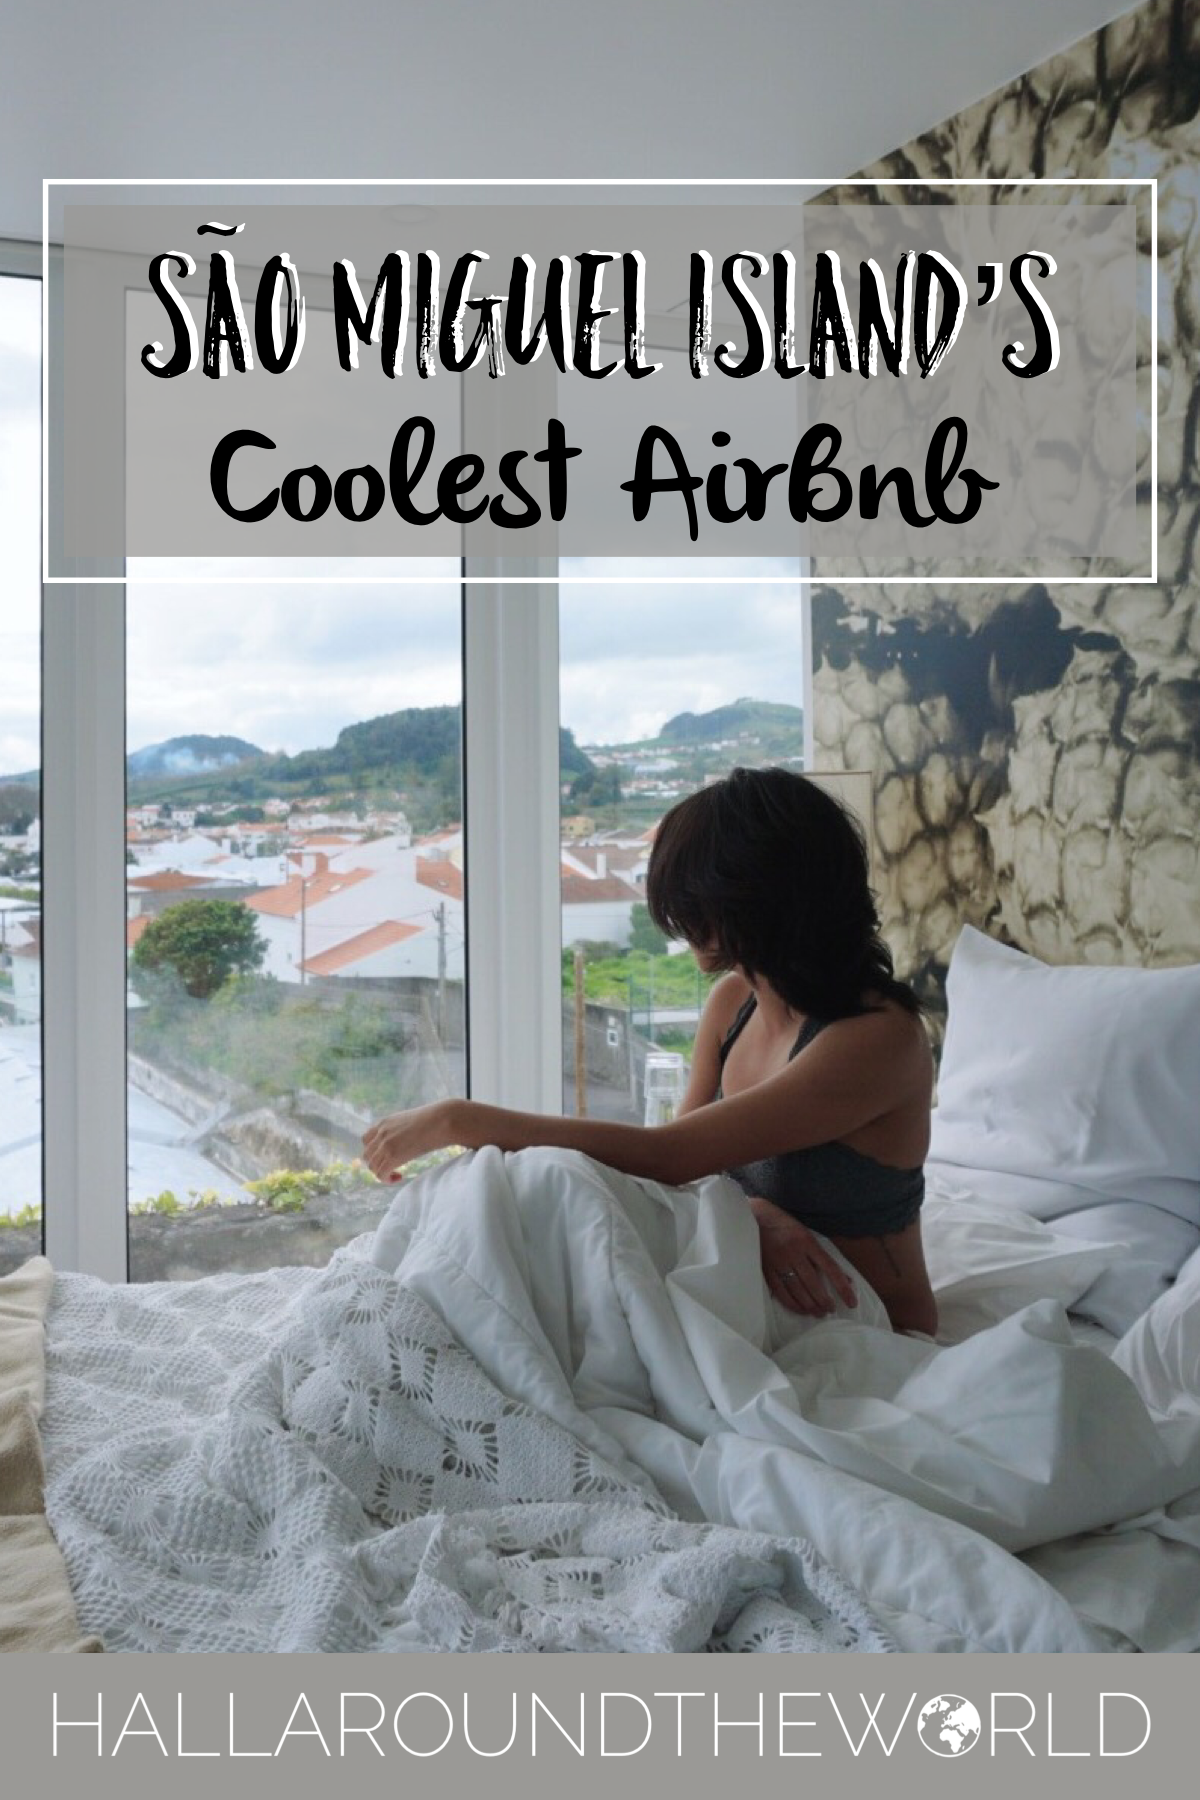 Unique AirBnb in Ponta Delgada with the Best View of São Miguel Island | HallAroundtheWorld